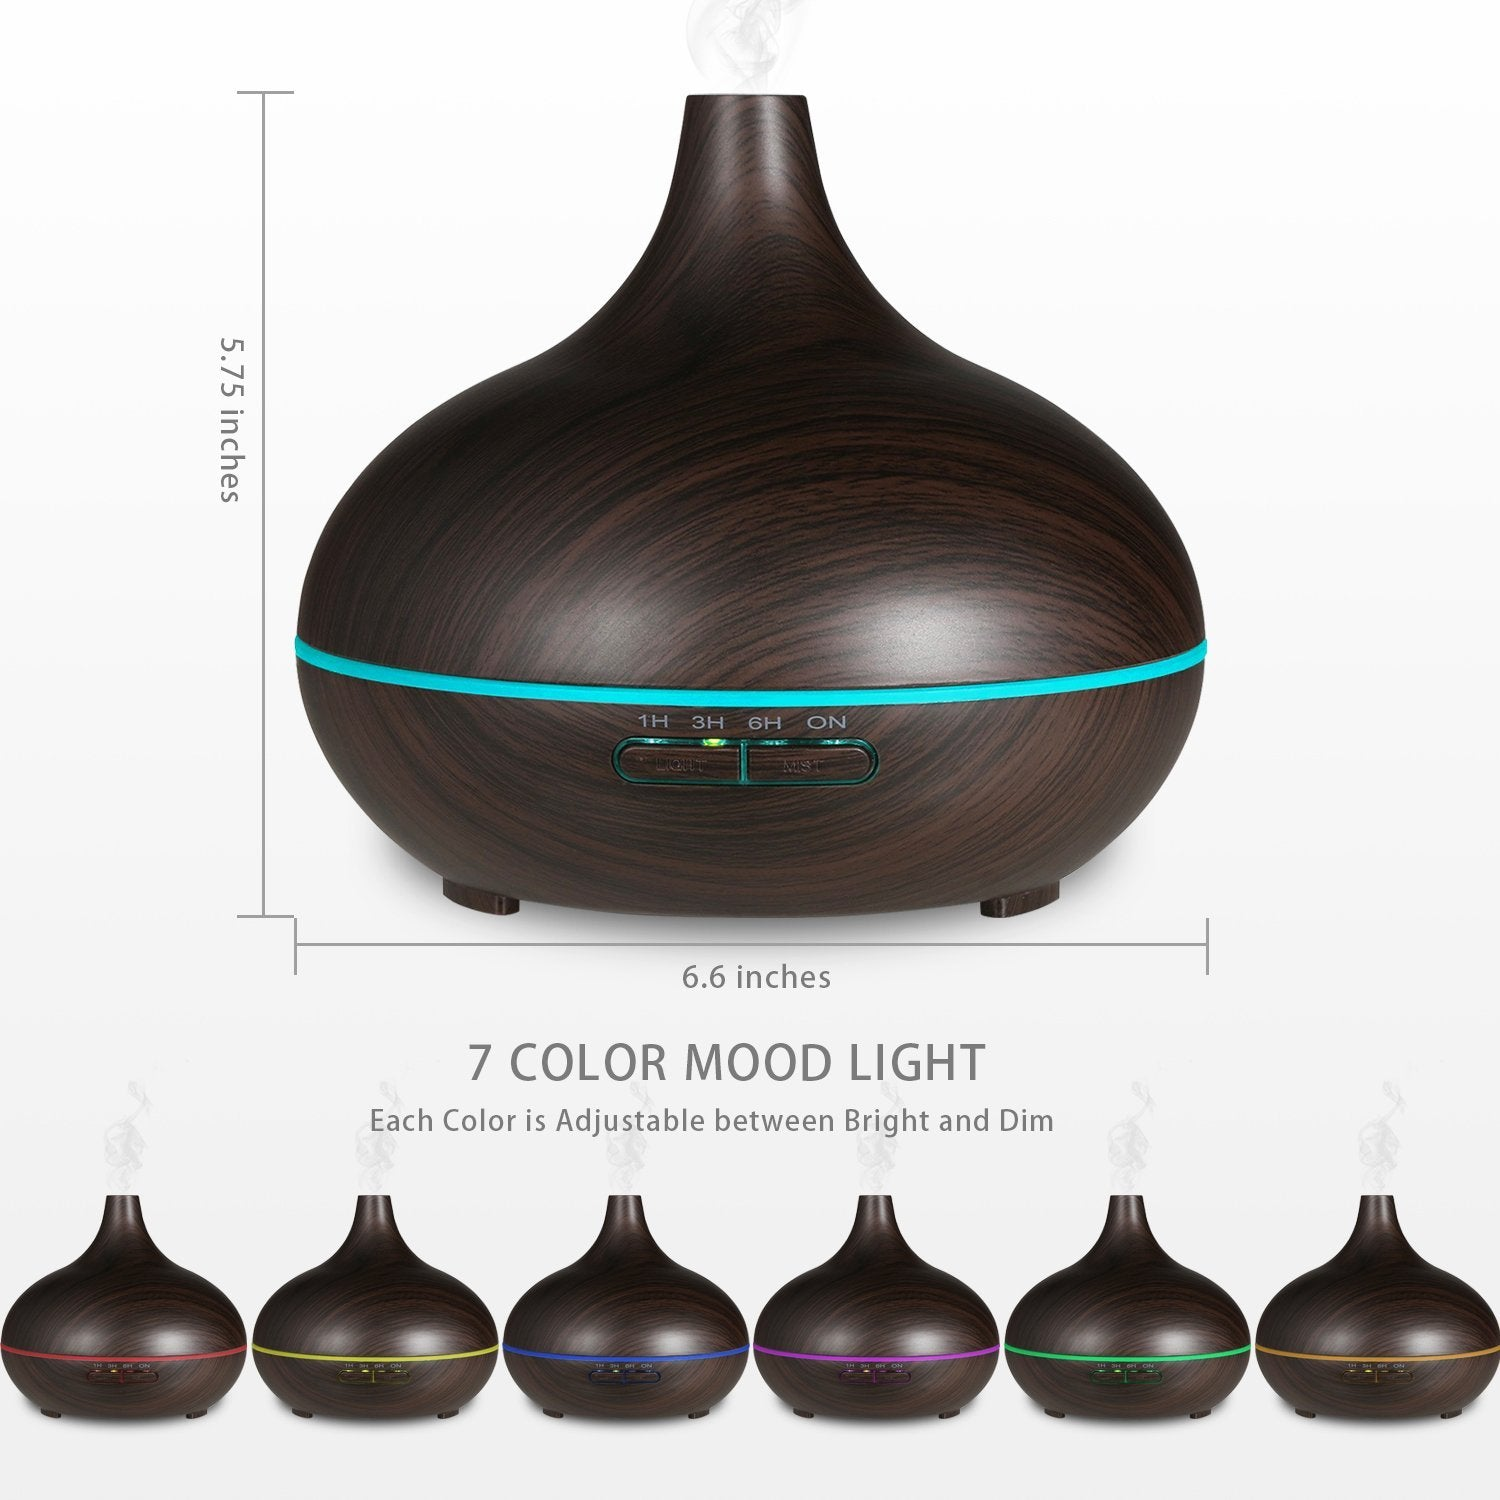 300ml Wood Grain Ultrasonic Aromatherapy Essential Oil Diffuser Quiet Humidifier With LED Light